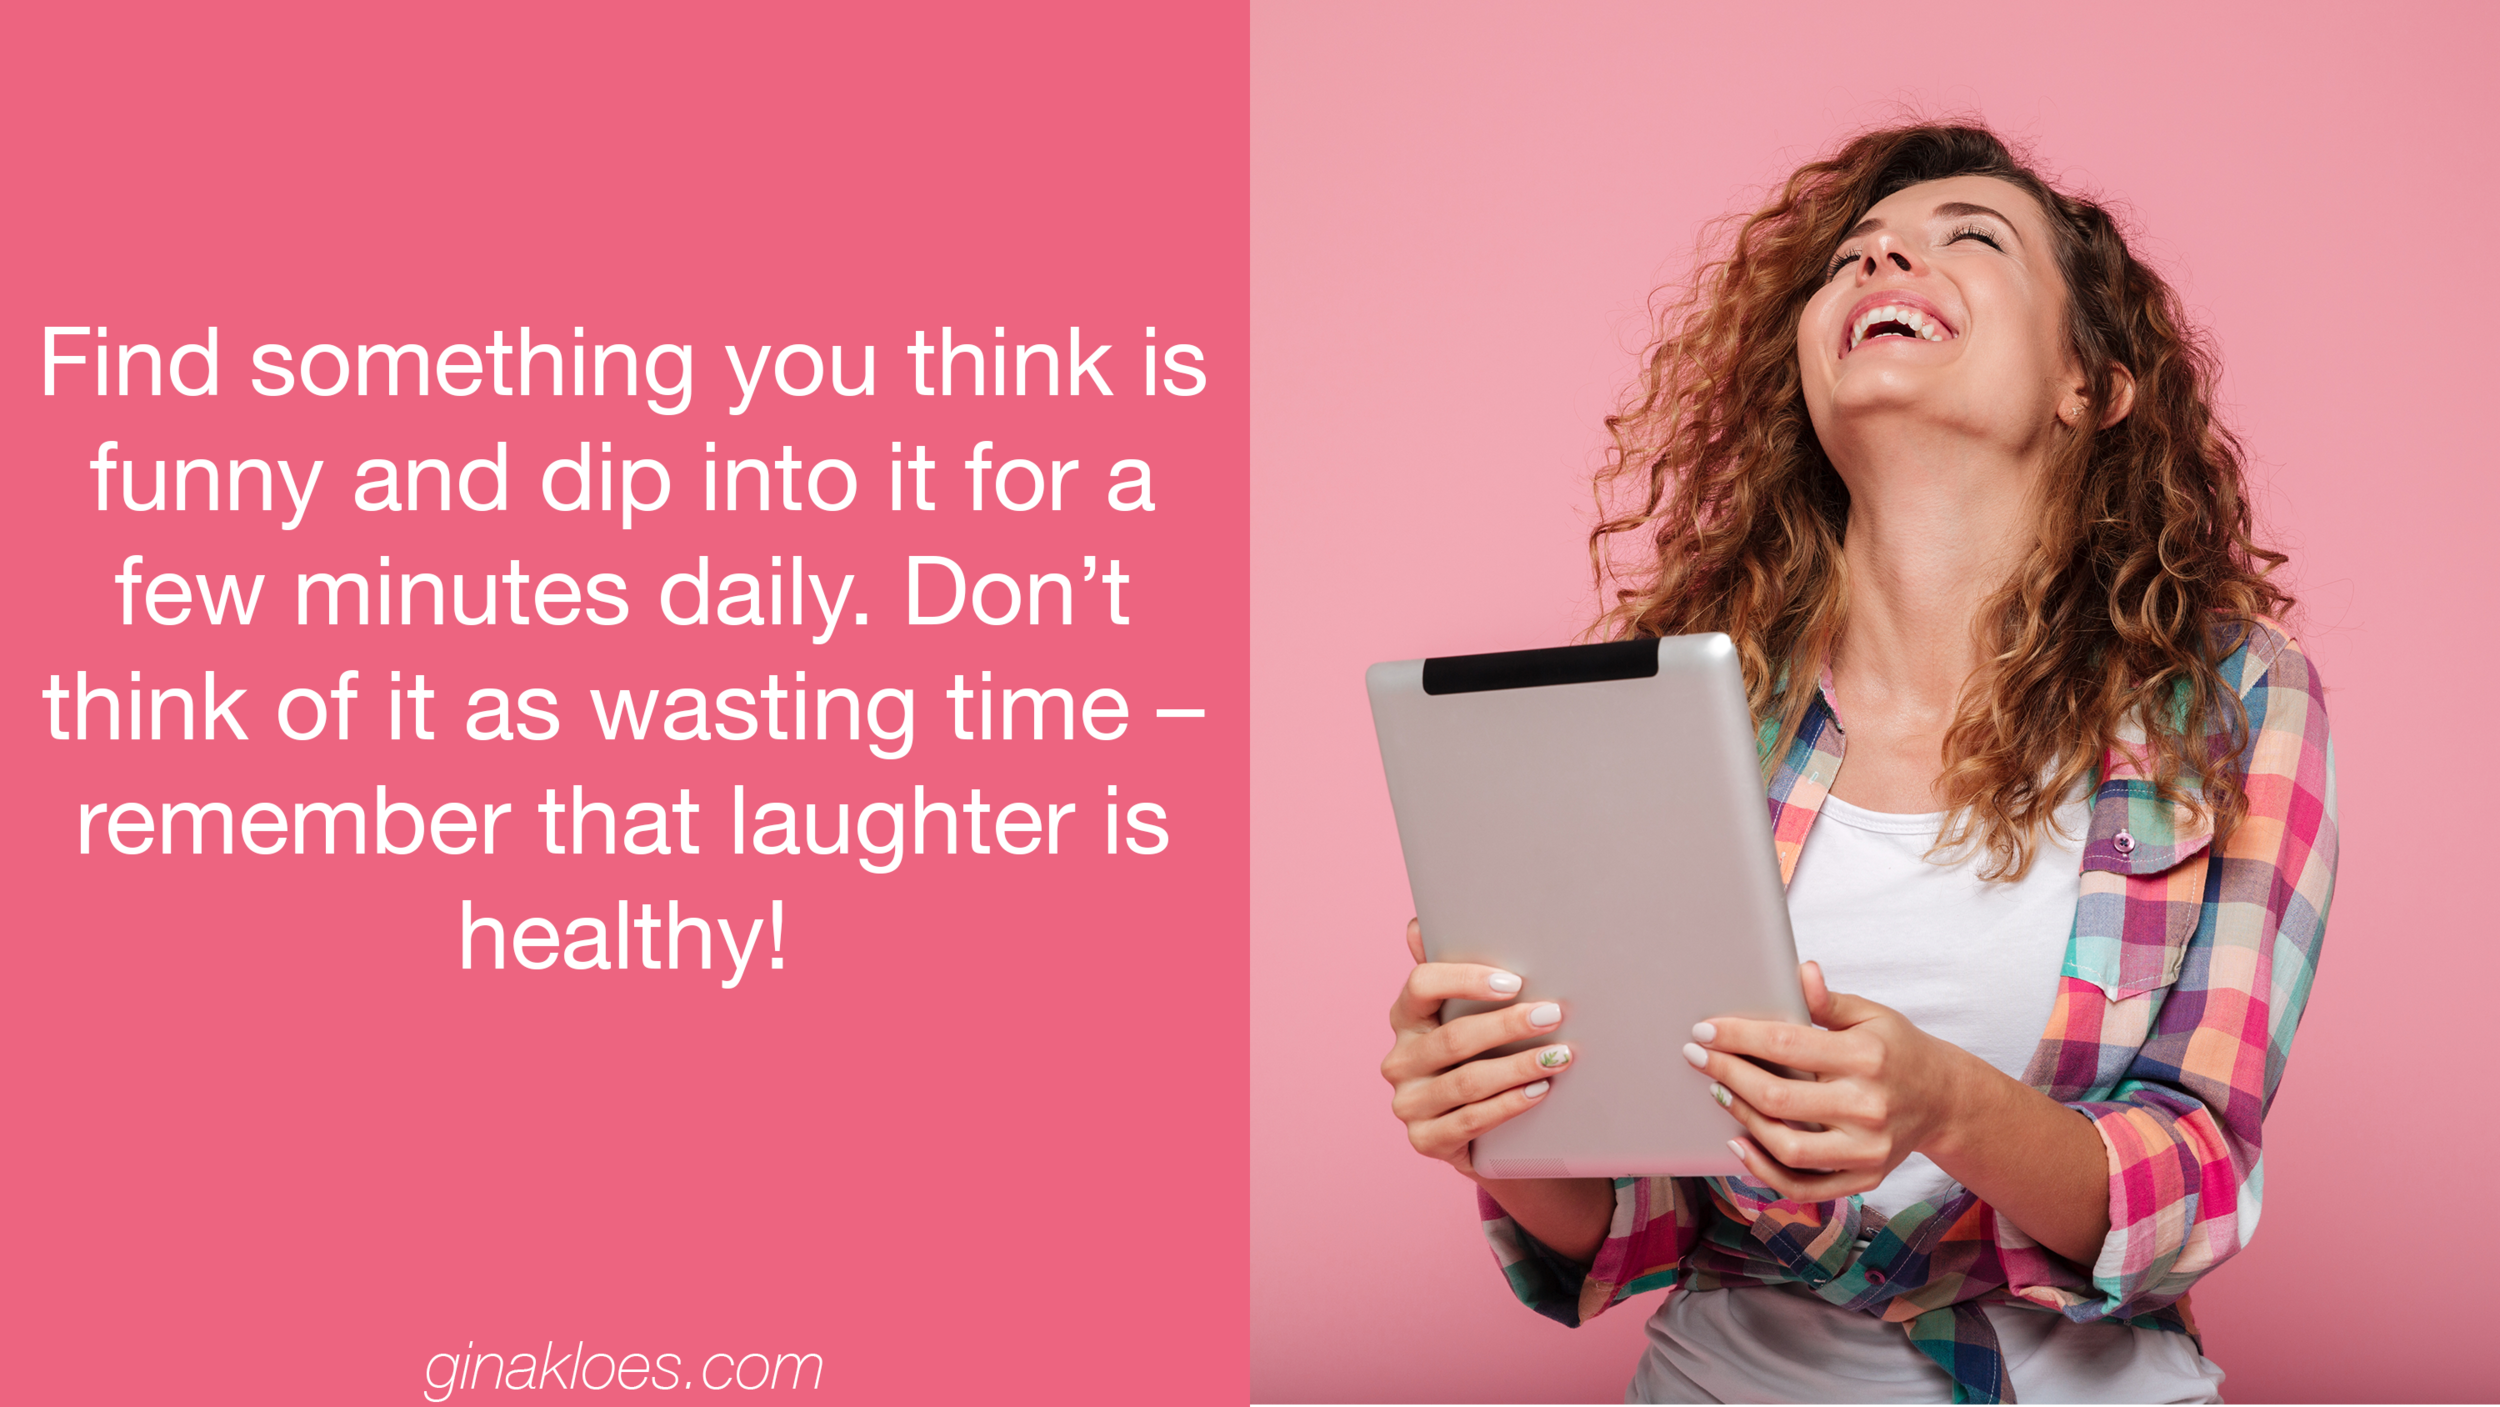 Gina Kloes - Funny Resources - Blog Images.png